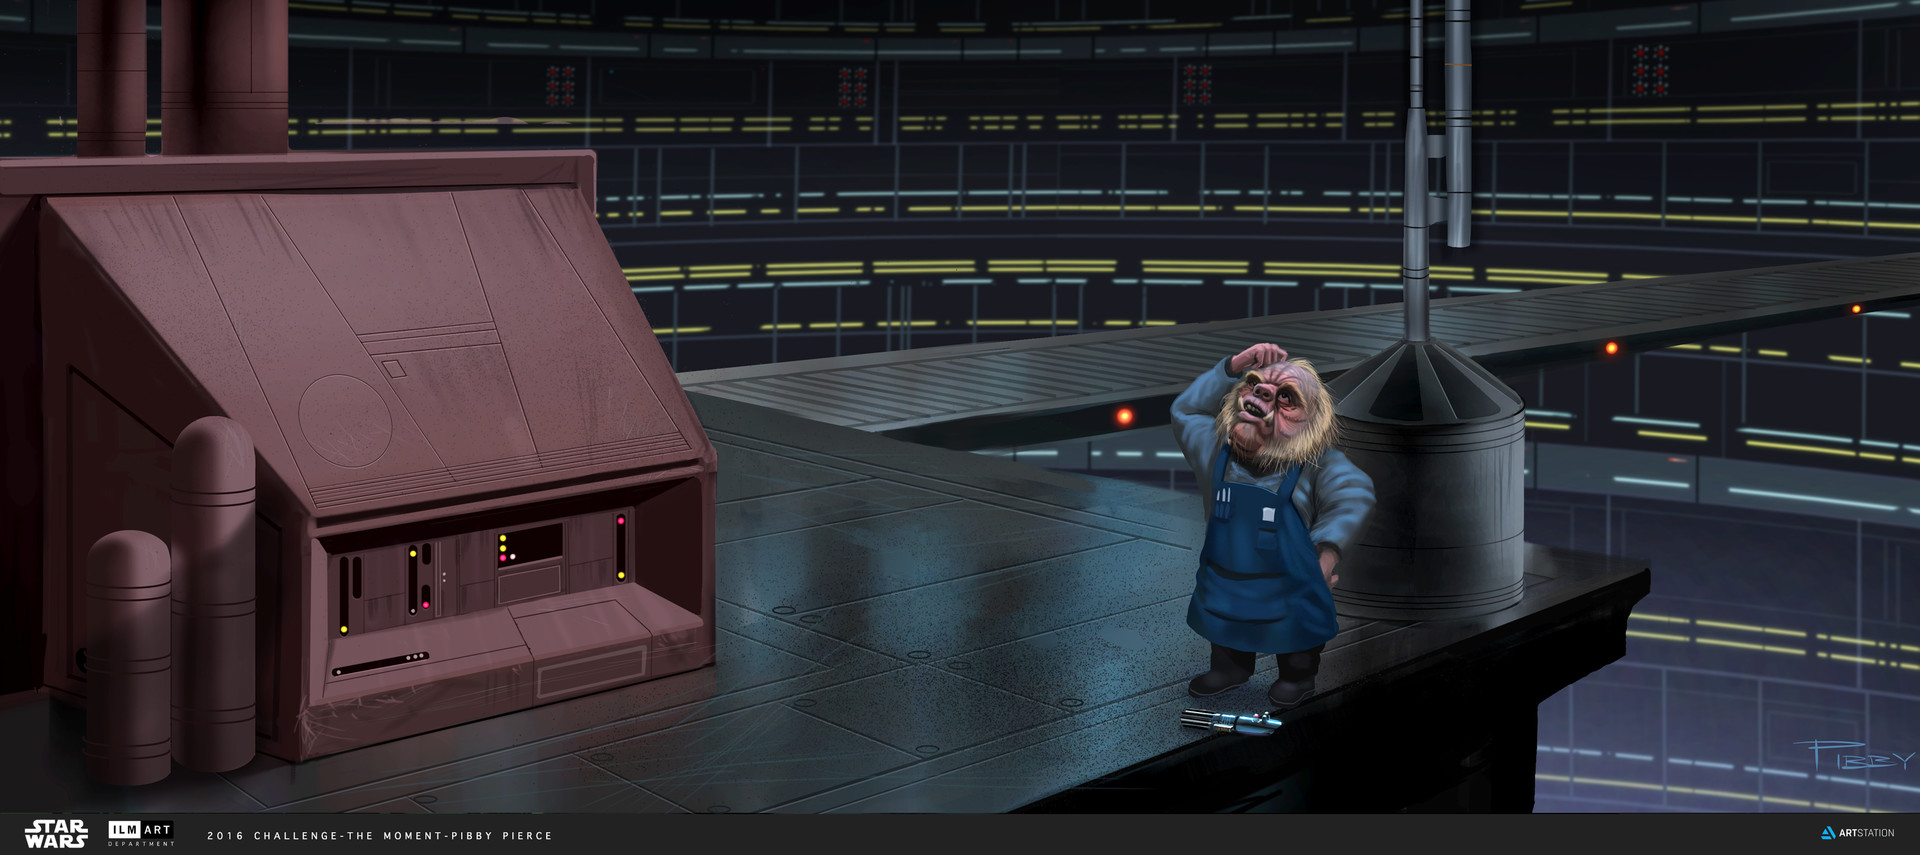 pibby-pierce-ilm-art-dep-moment-2-pibbyp